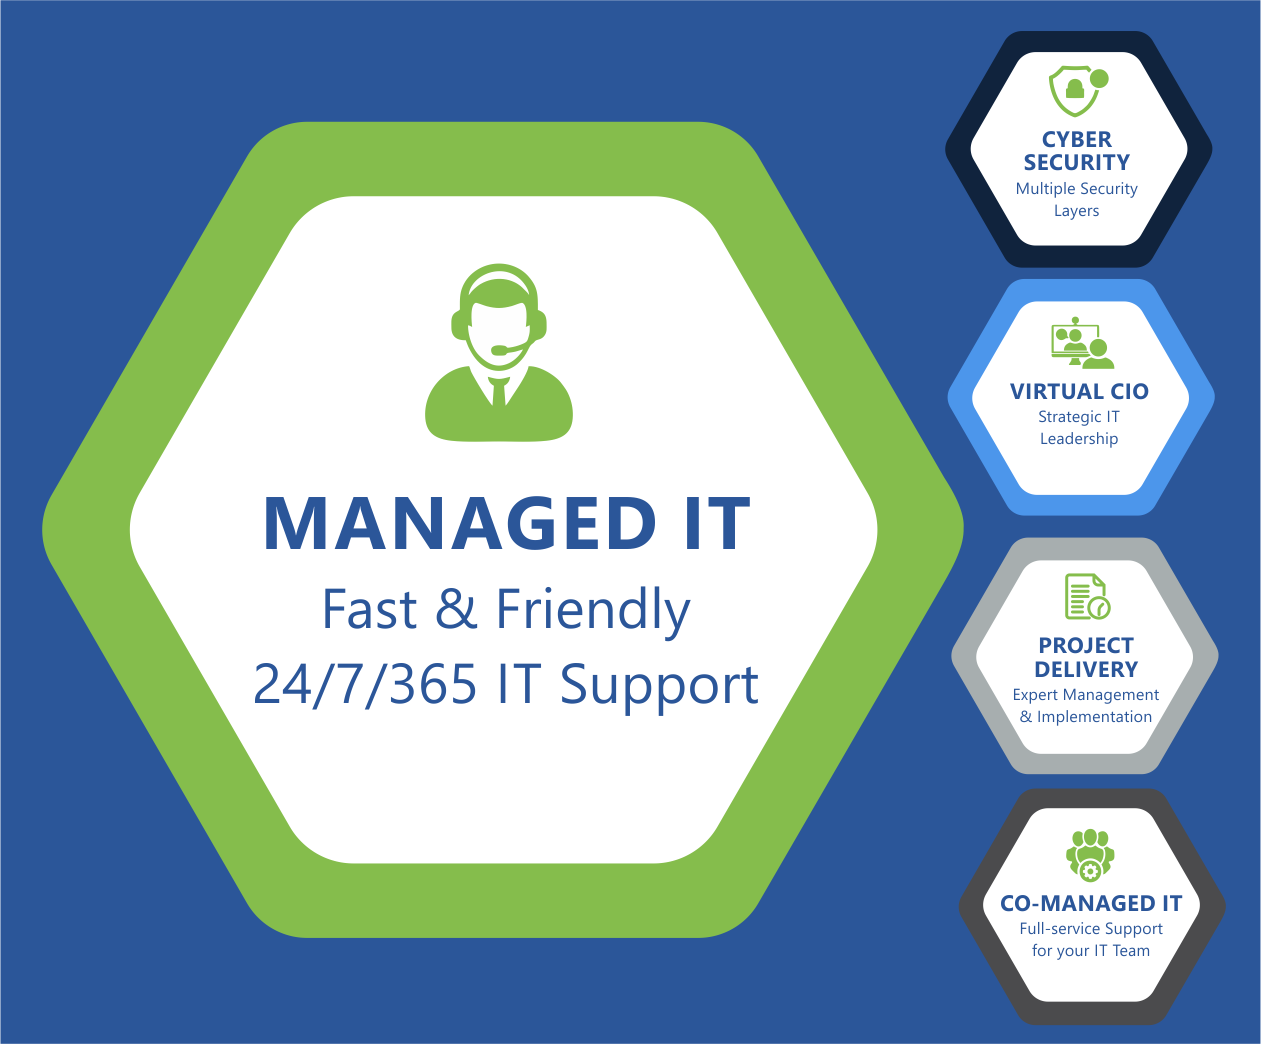 managed-it-graphic-for-articles-communication-1